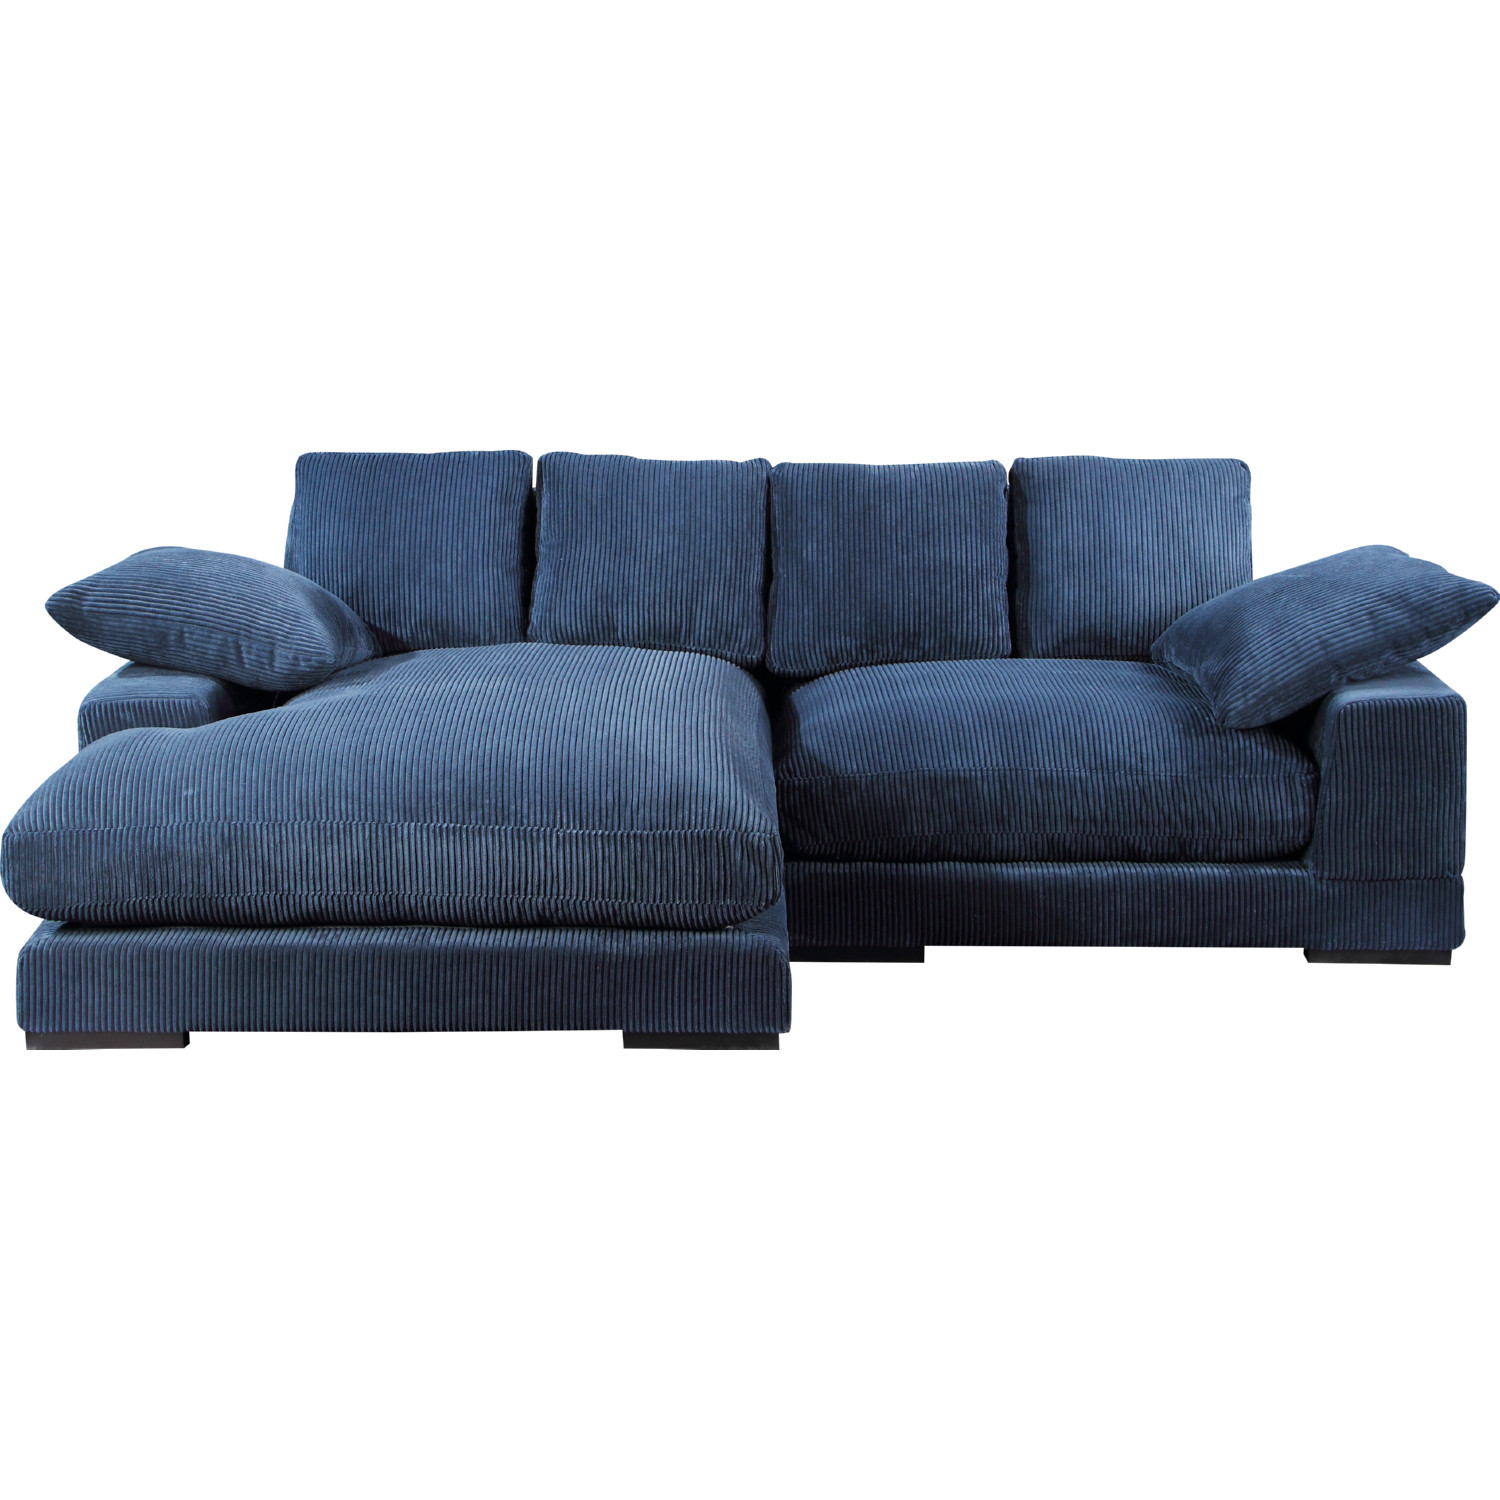 Moe S Home Collection Tn 1004 46 Plunge Sectional Sofa W Reversible